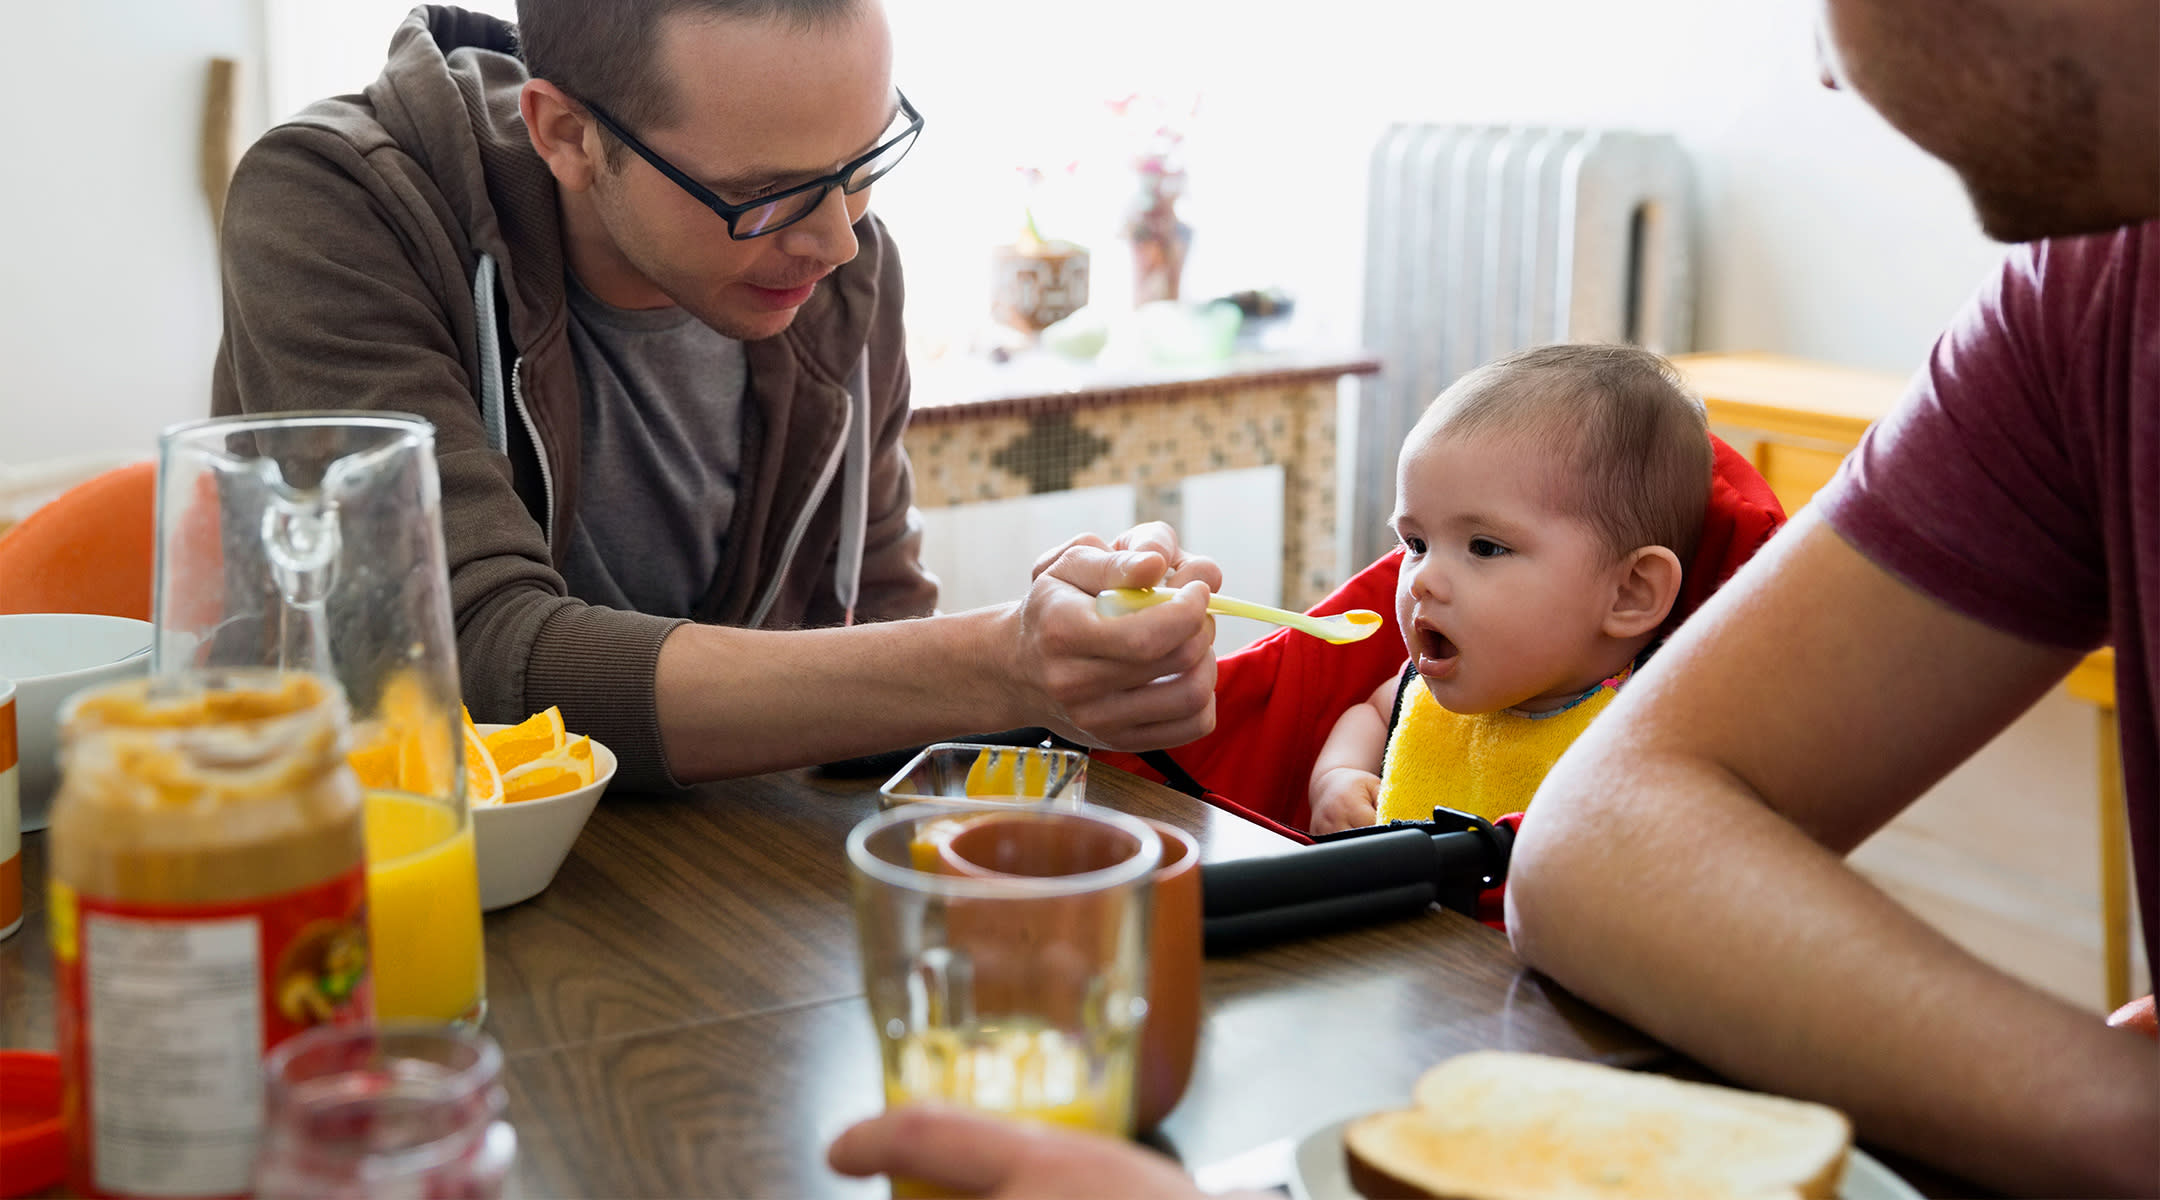 dads feeding baby first solid foods